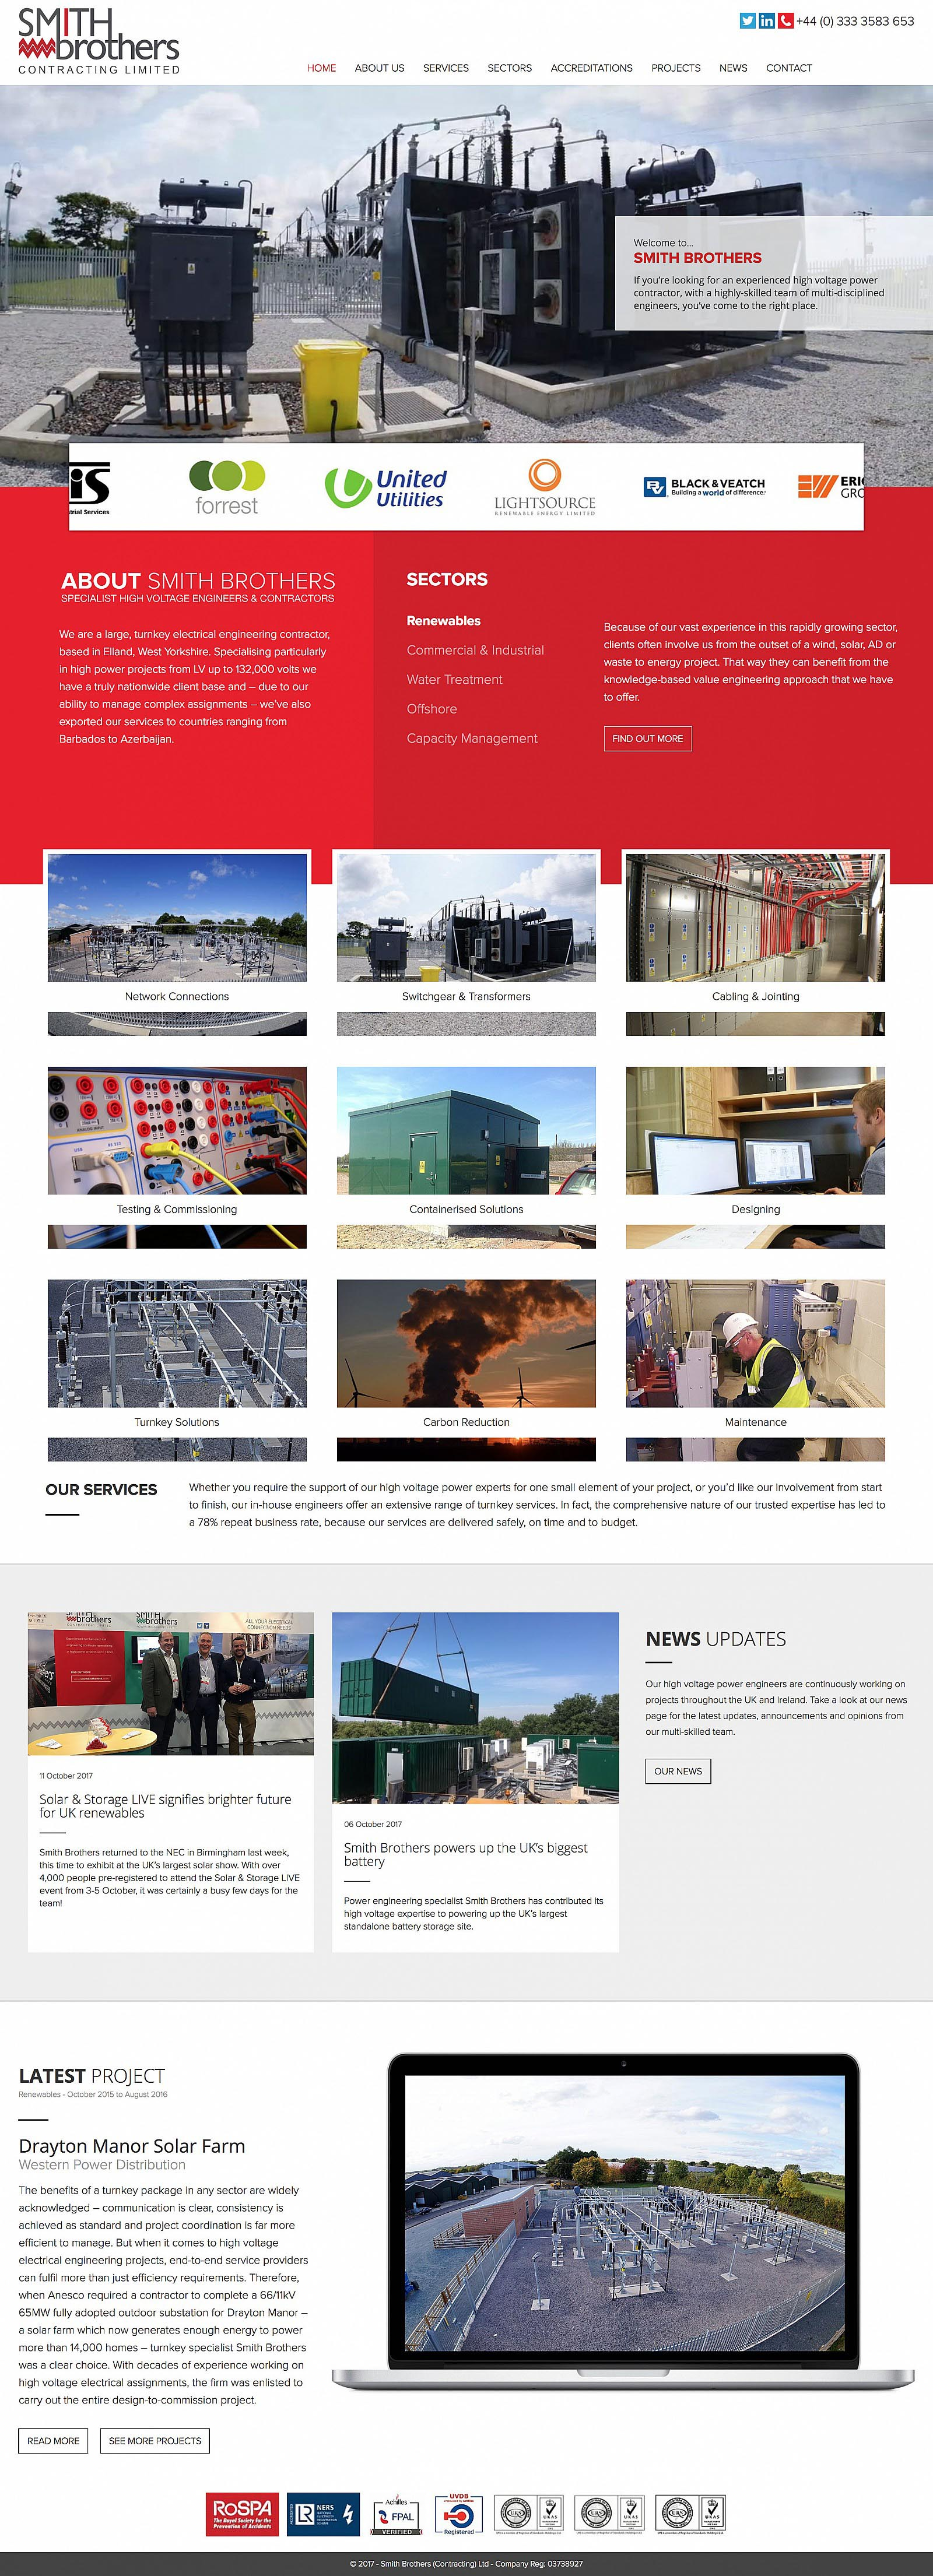 Smith Brothers ltd Website